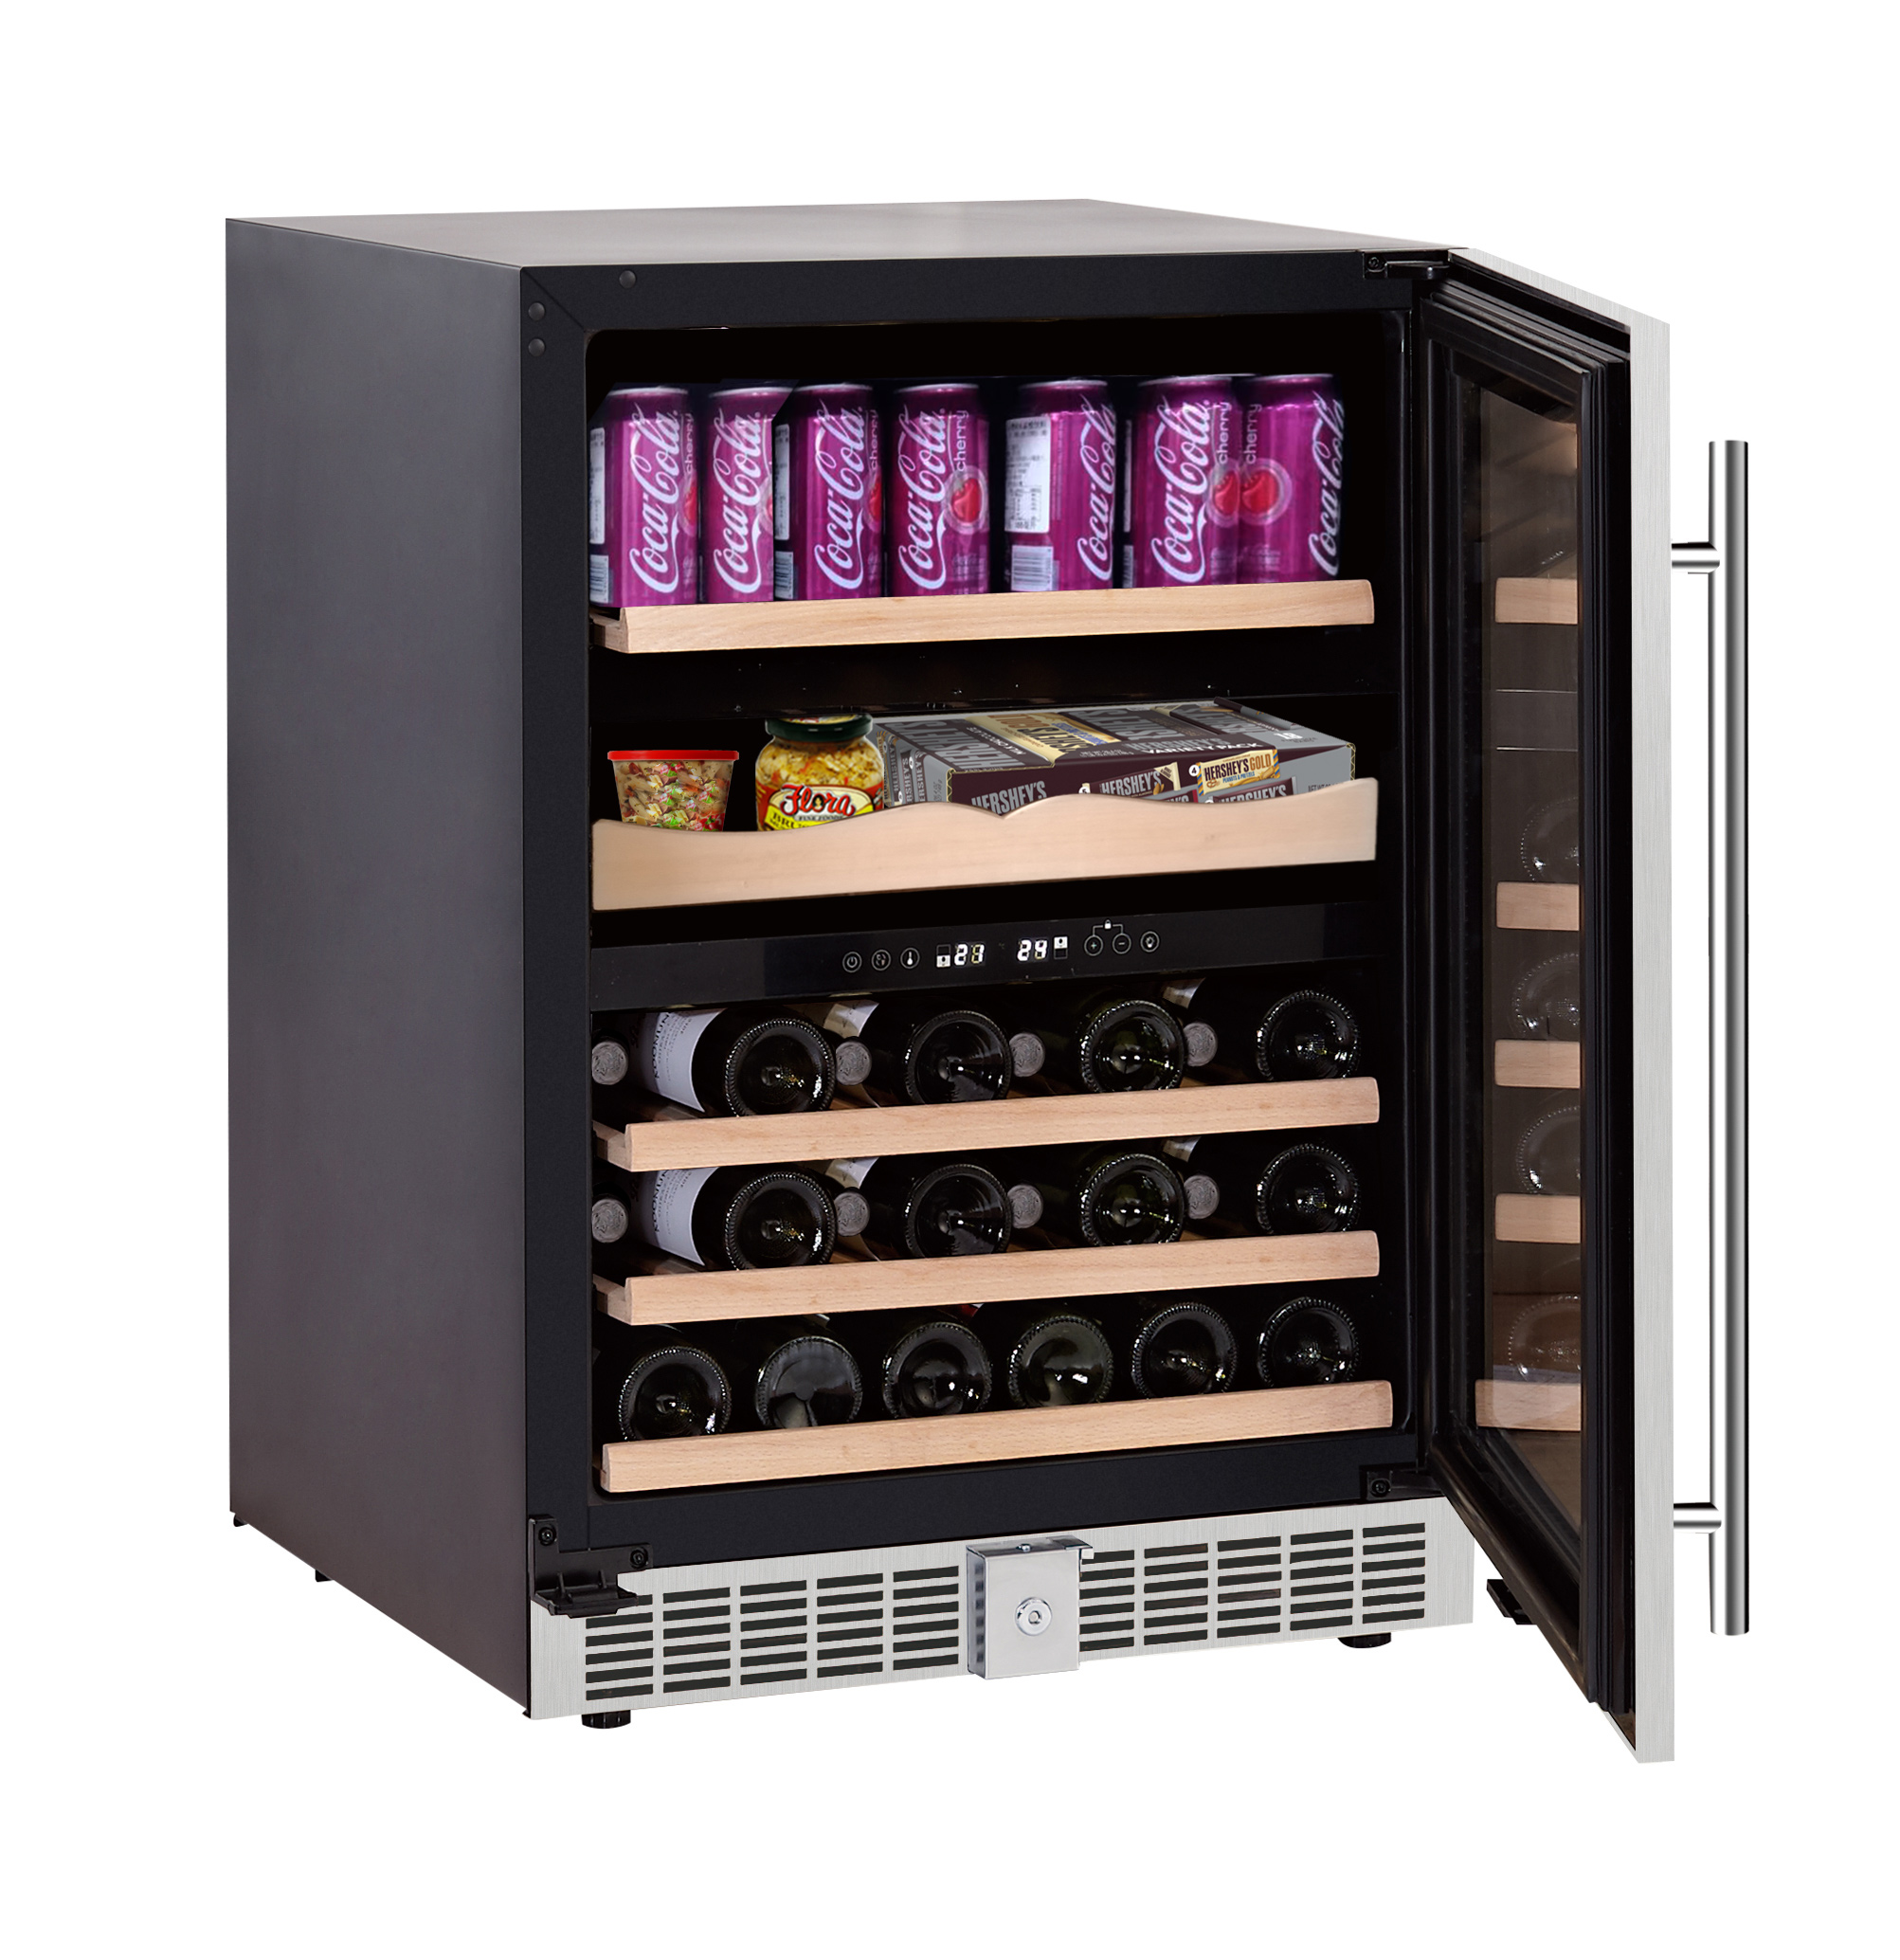 Luxury Gourmet Center Dual Zone in Stainless � Cans, Bottles, Fine Foods